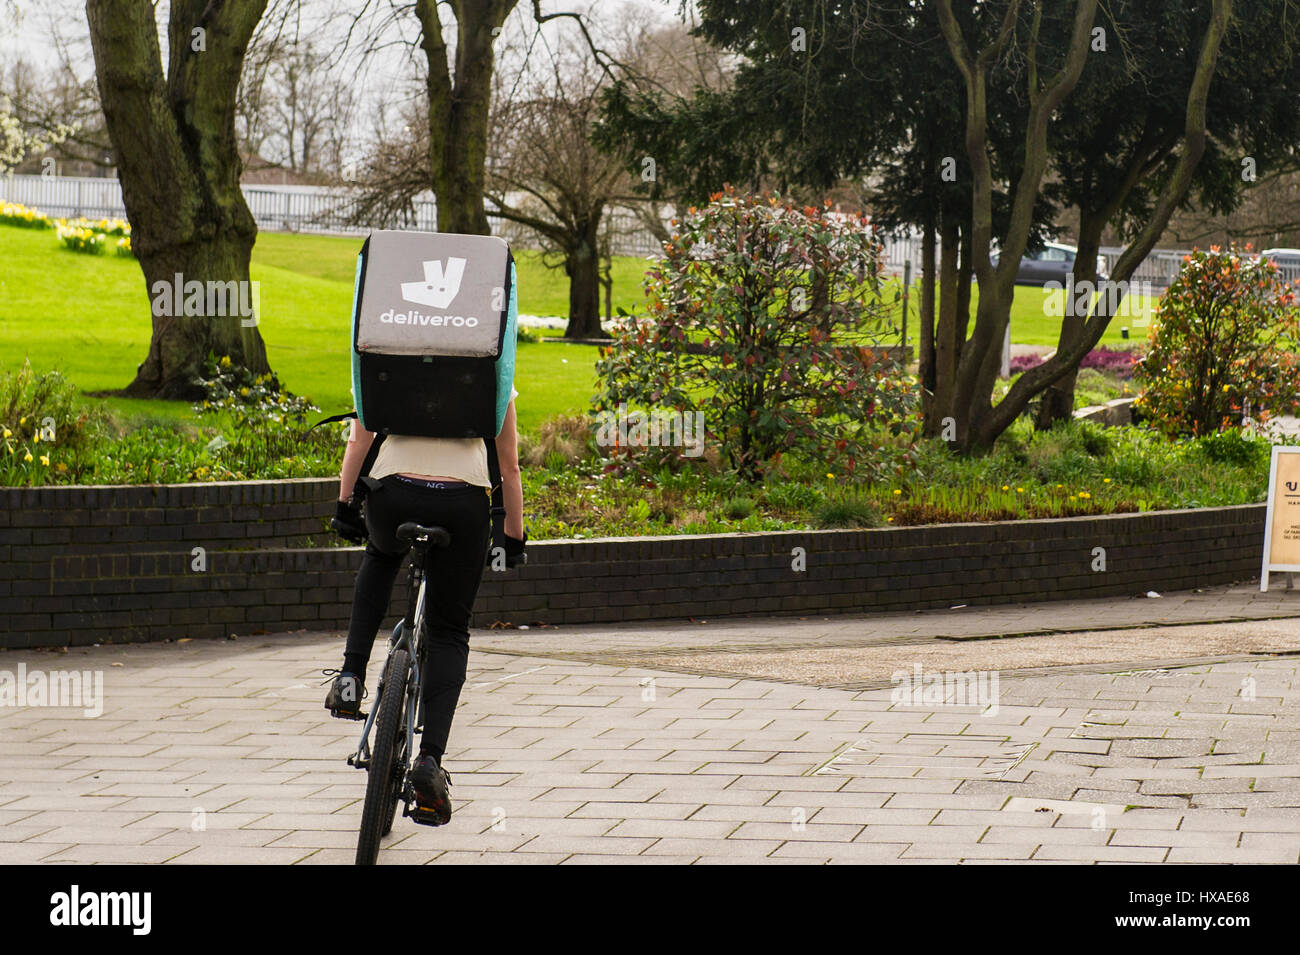 Deliveroo food delivery employee man riding a push bike with a food delivery box on his back. Stock Photo